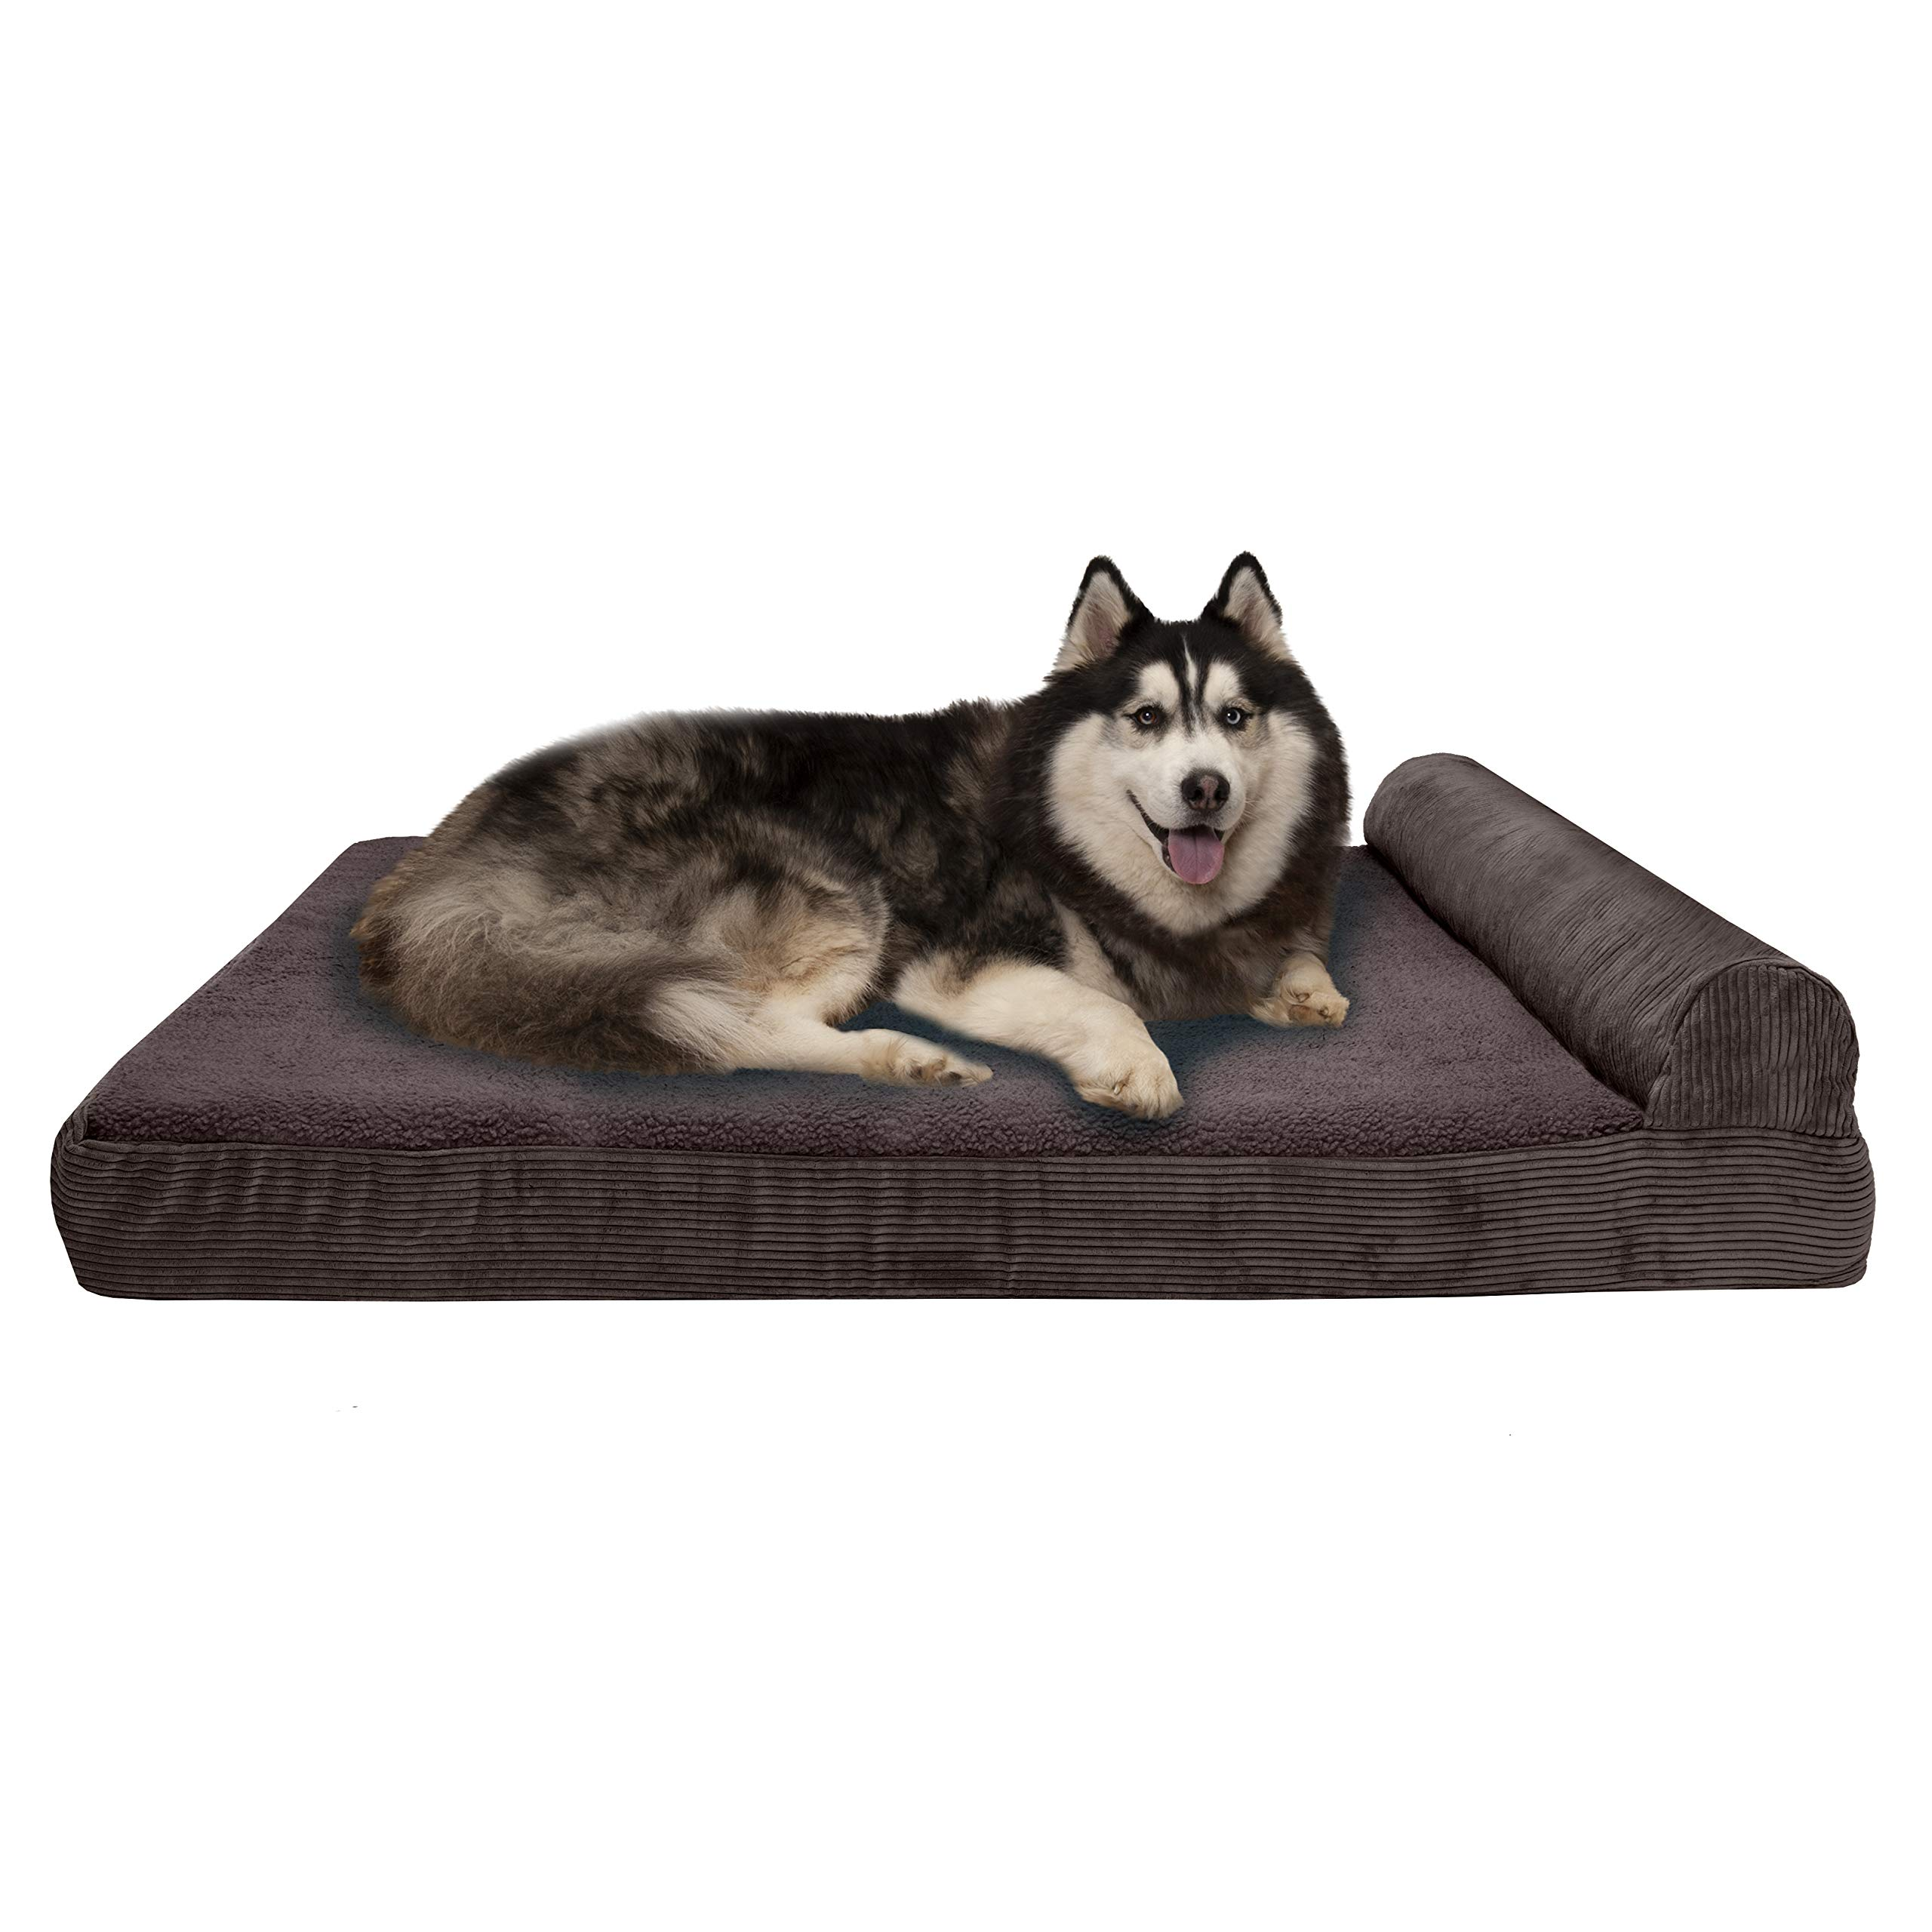 Furhaven Pet Dog Bed | Deluxe Cooling Gel Memory Foam Faux Fleece & Corduroy Chaise Lounge Living Room Couch Pet Bed w/ Removable Cover for Dogs & Cats, Dark Espresso, Jumbo Plus by Furhaven